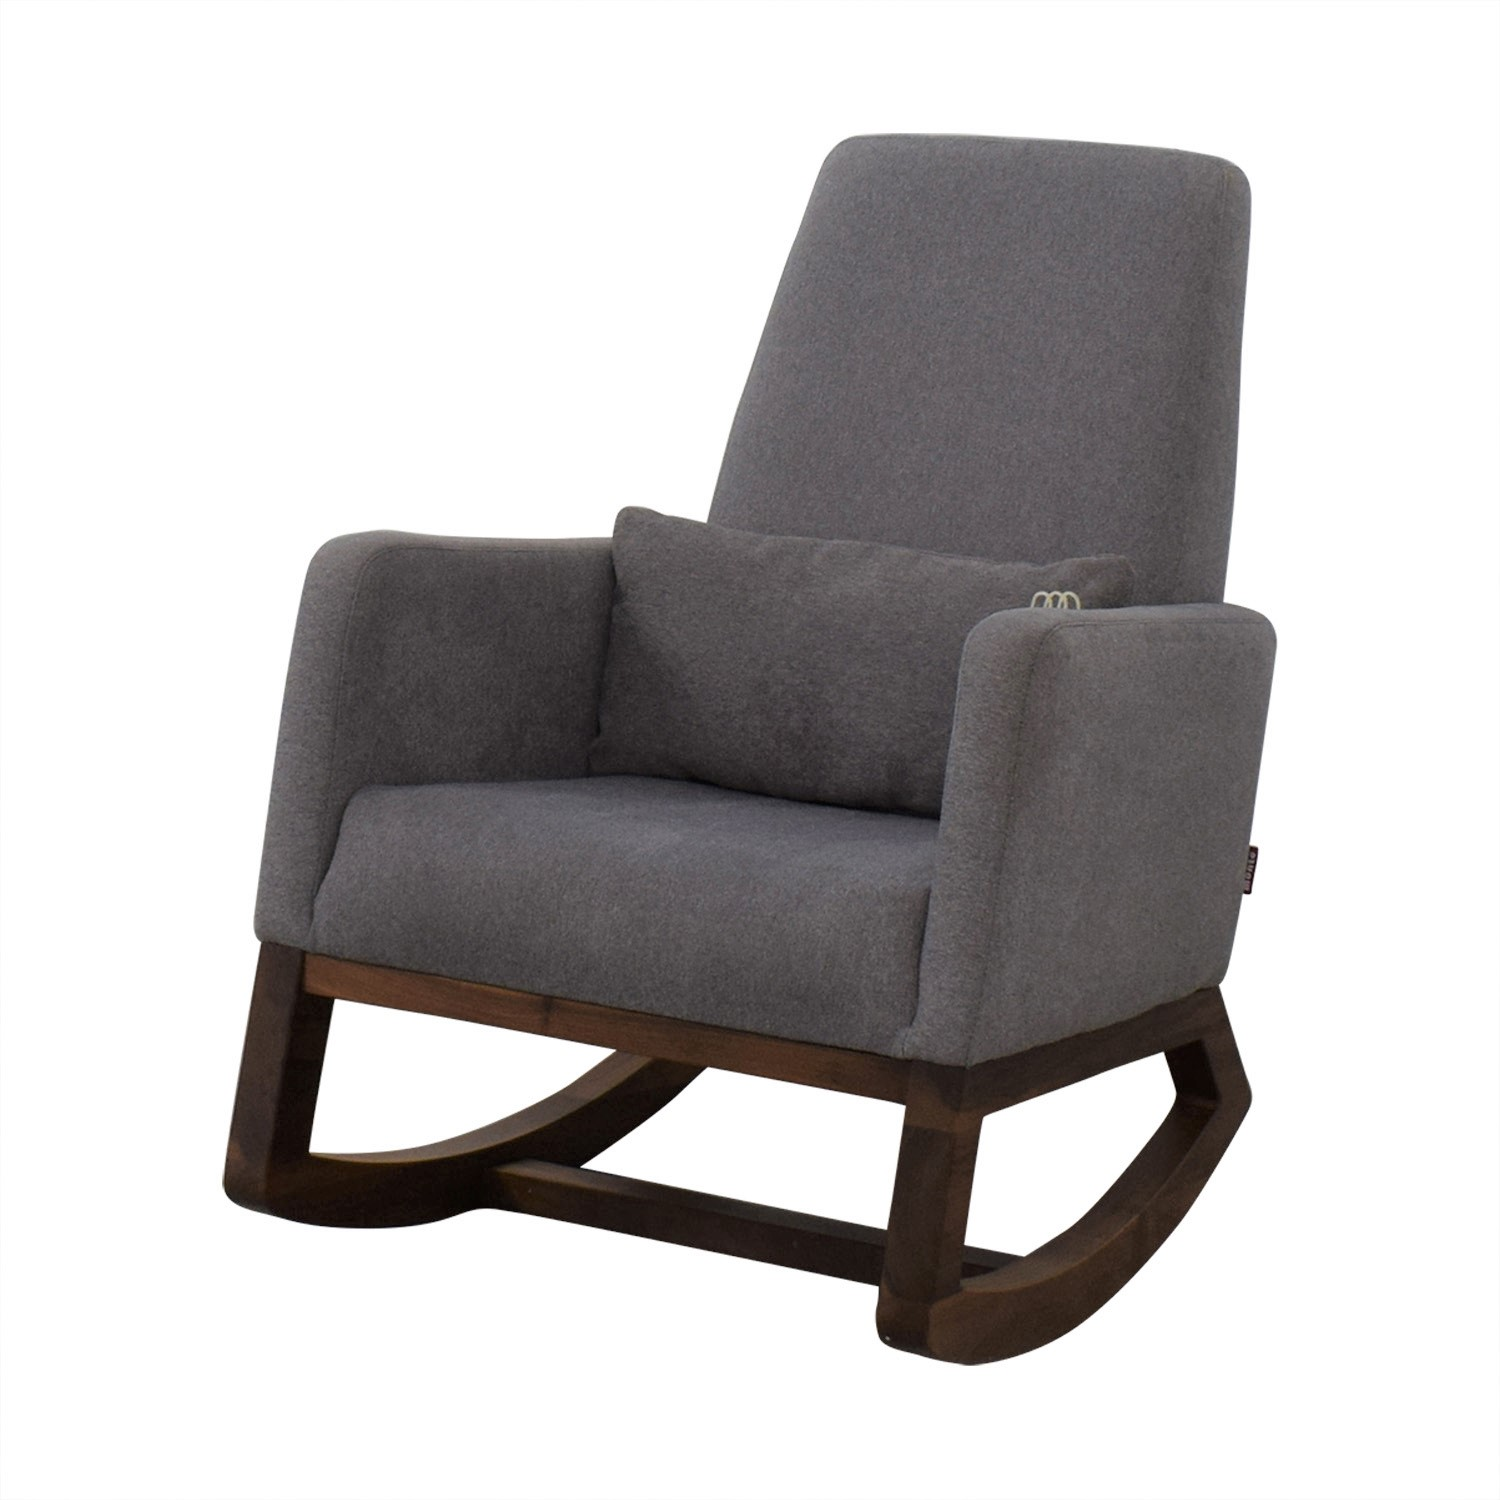 Monte Design Monte Design Joya Rocker Accent Chair used